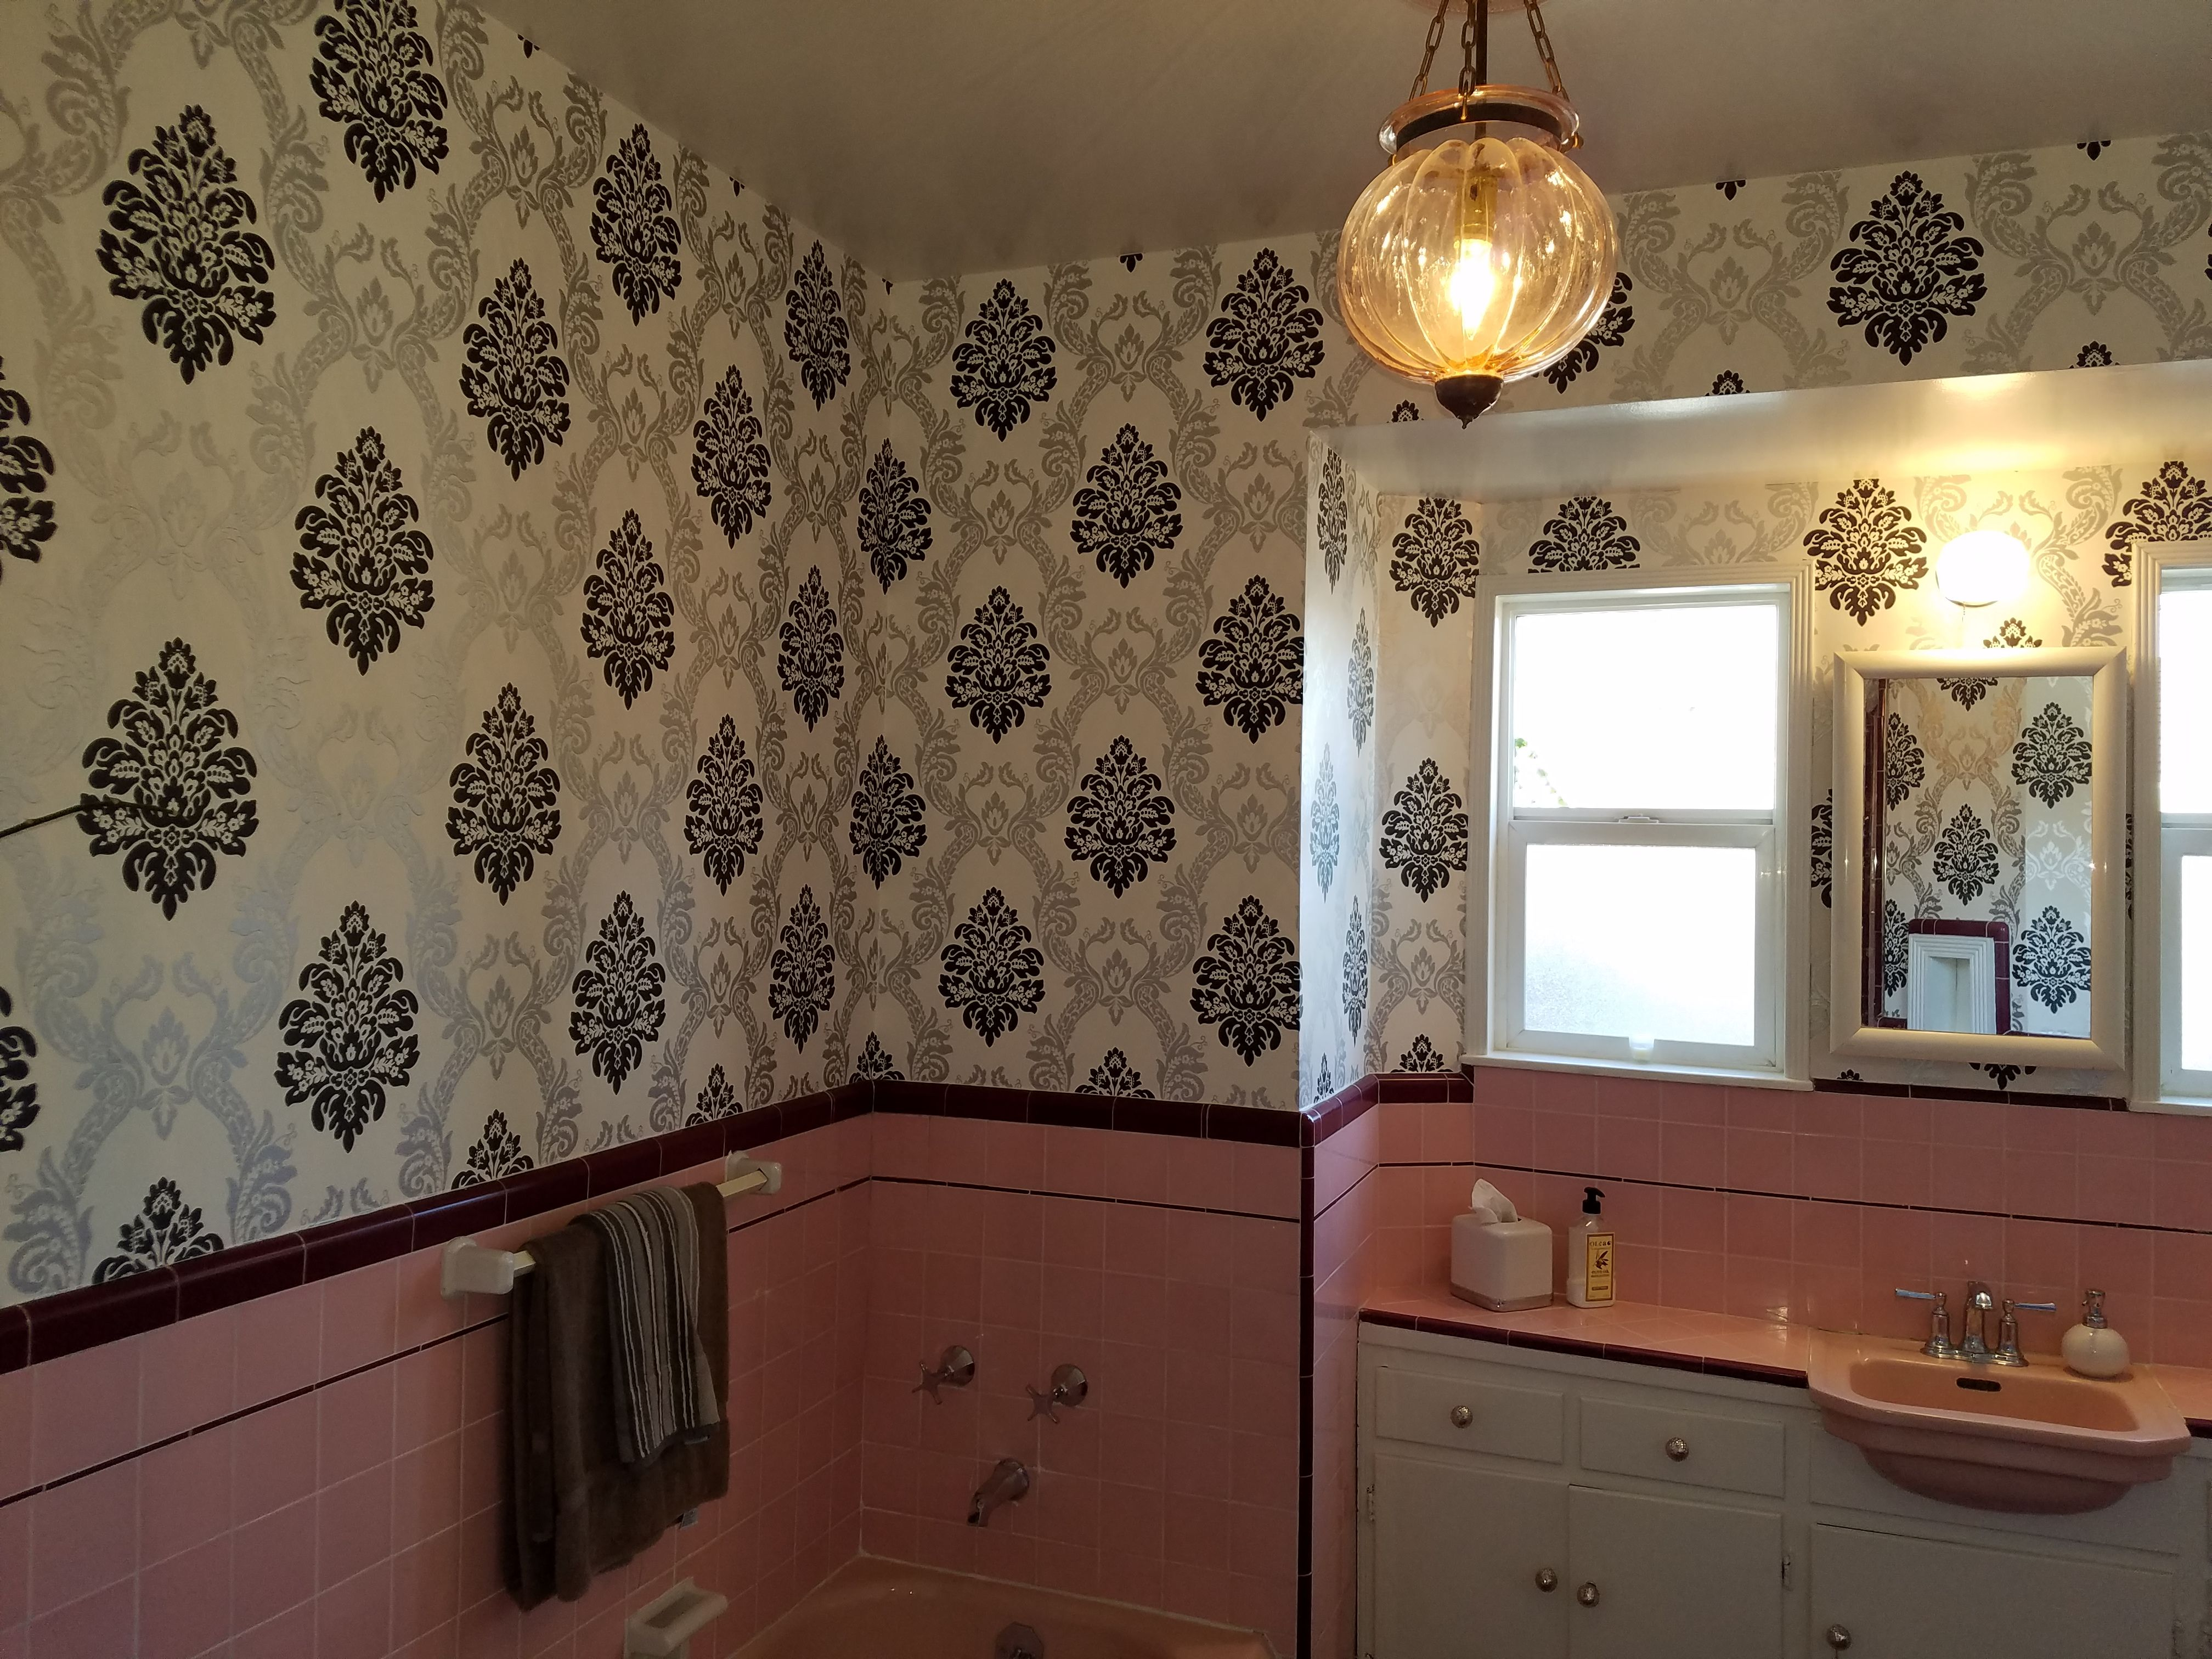 Call us for your next wallpaper installation eyecandy